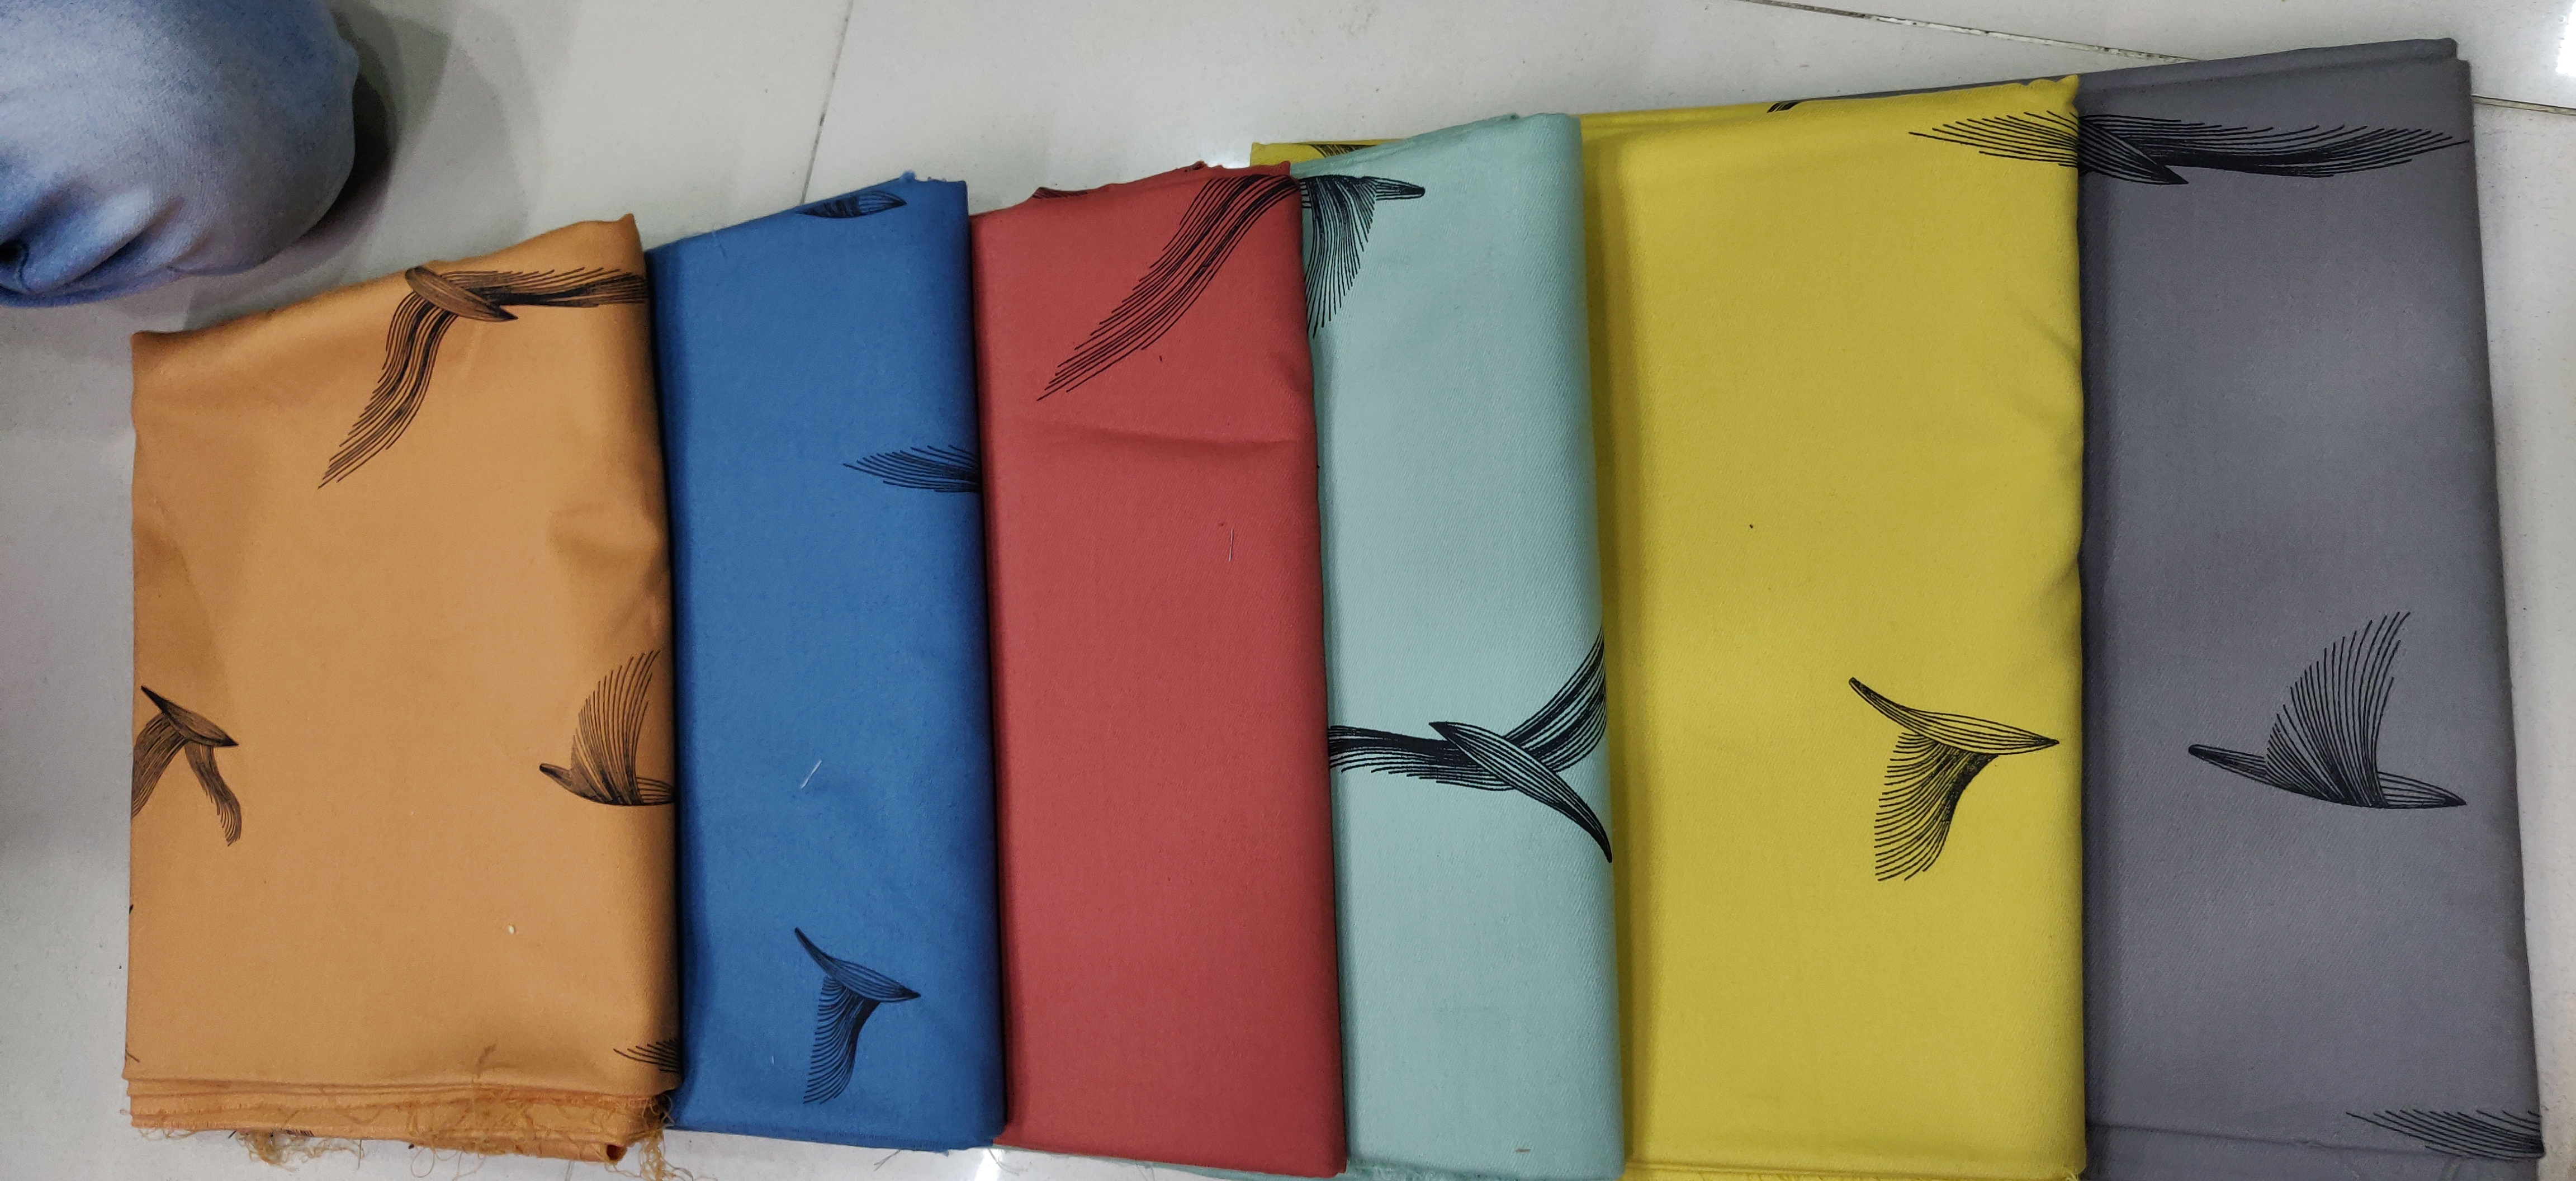 Imported Printed Fabric